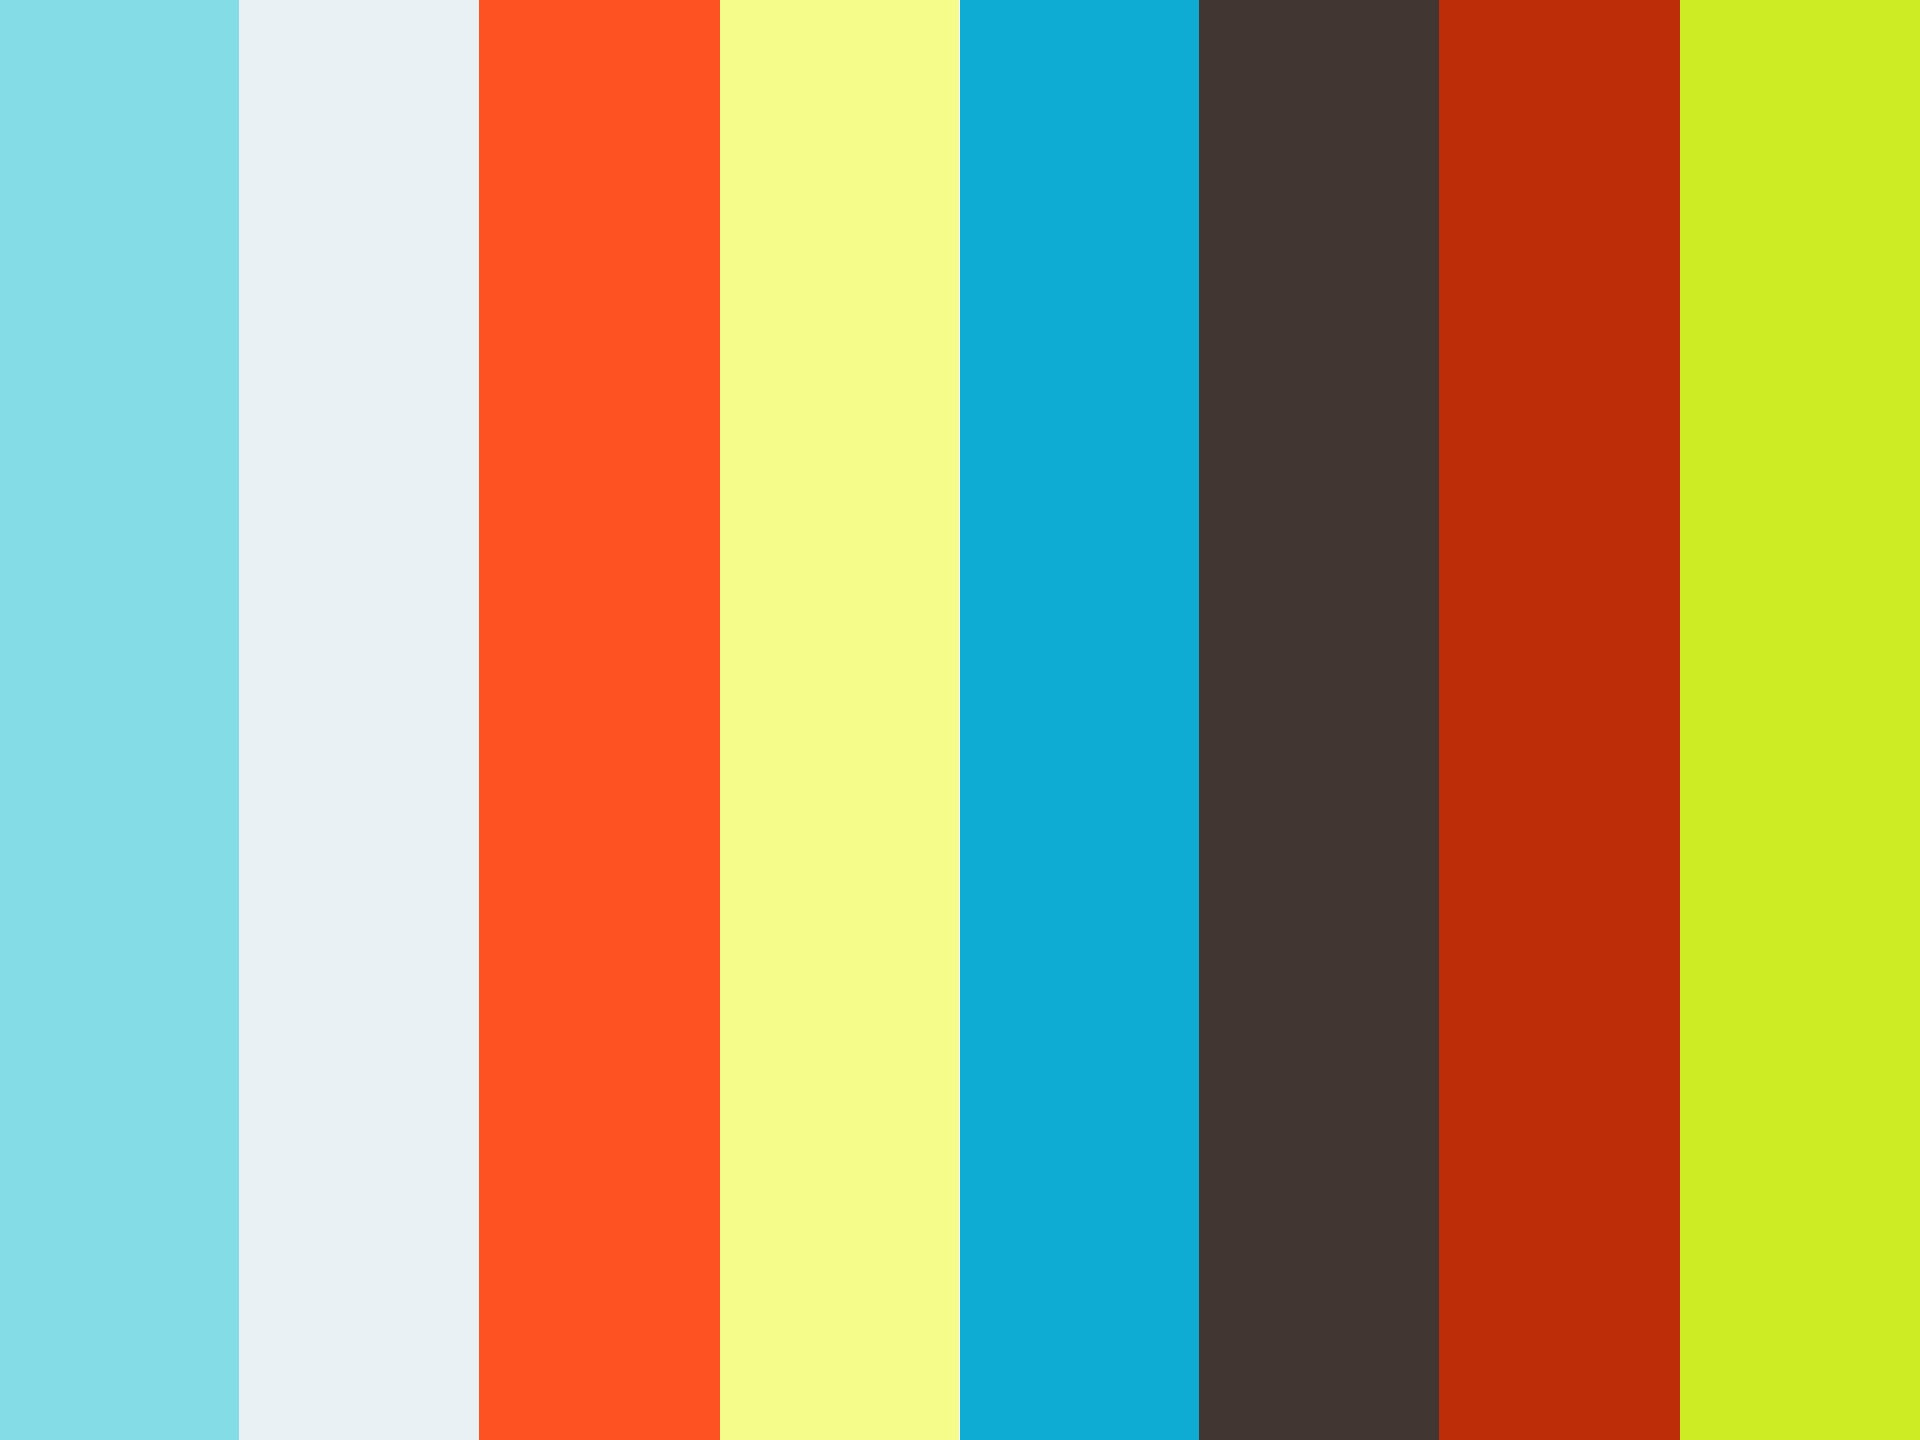 Constipation Core Subjects 2011